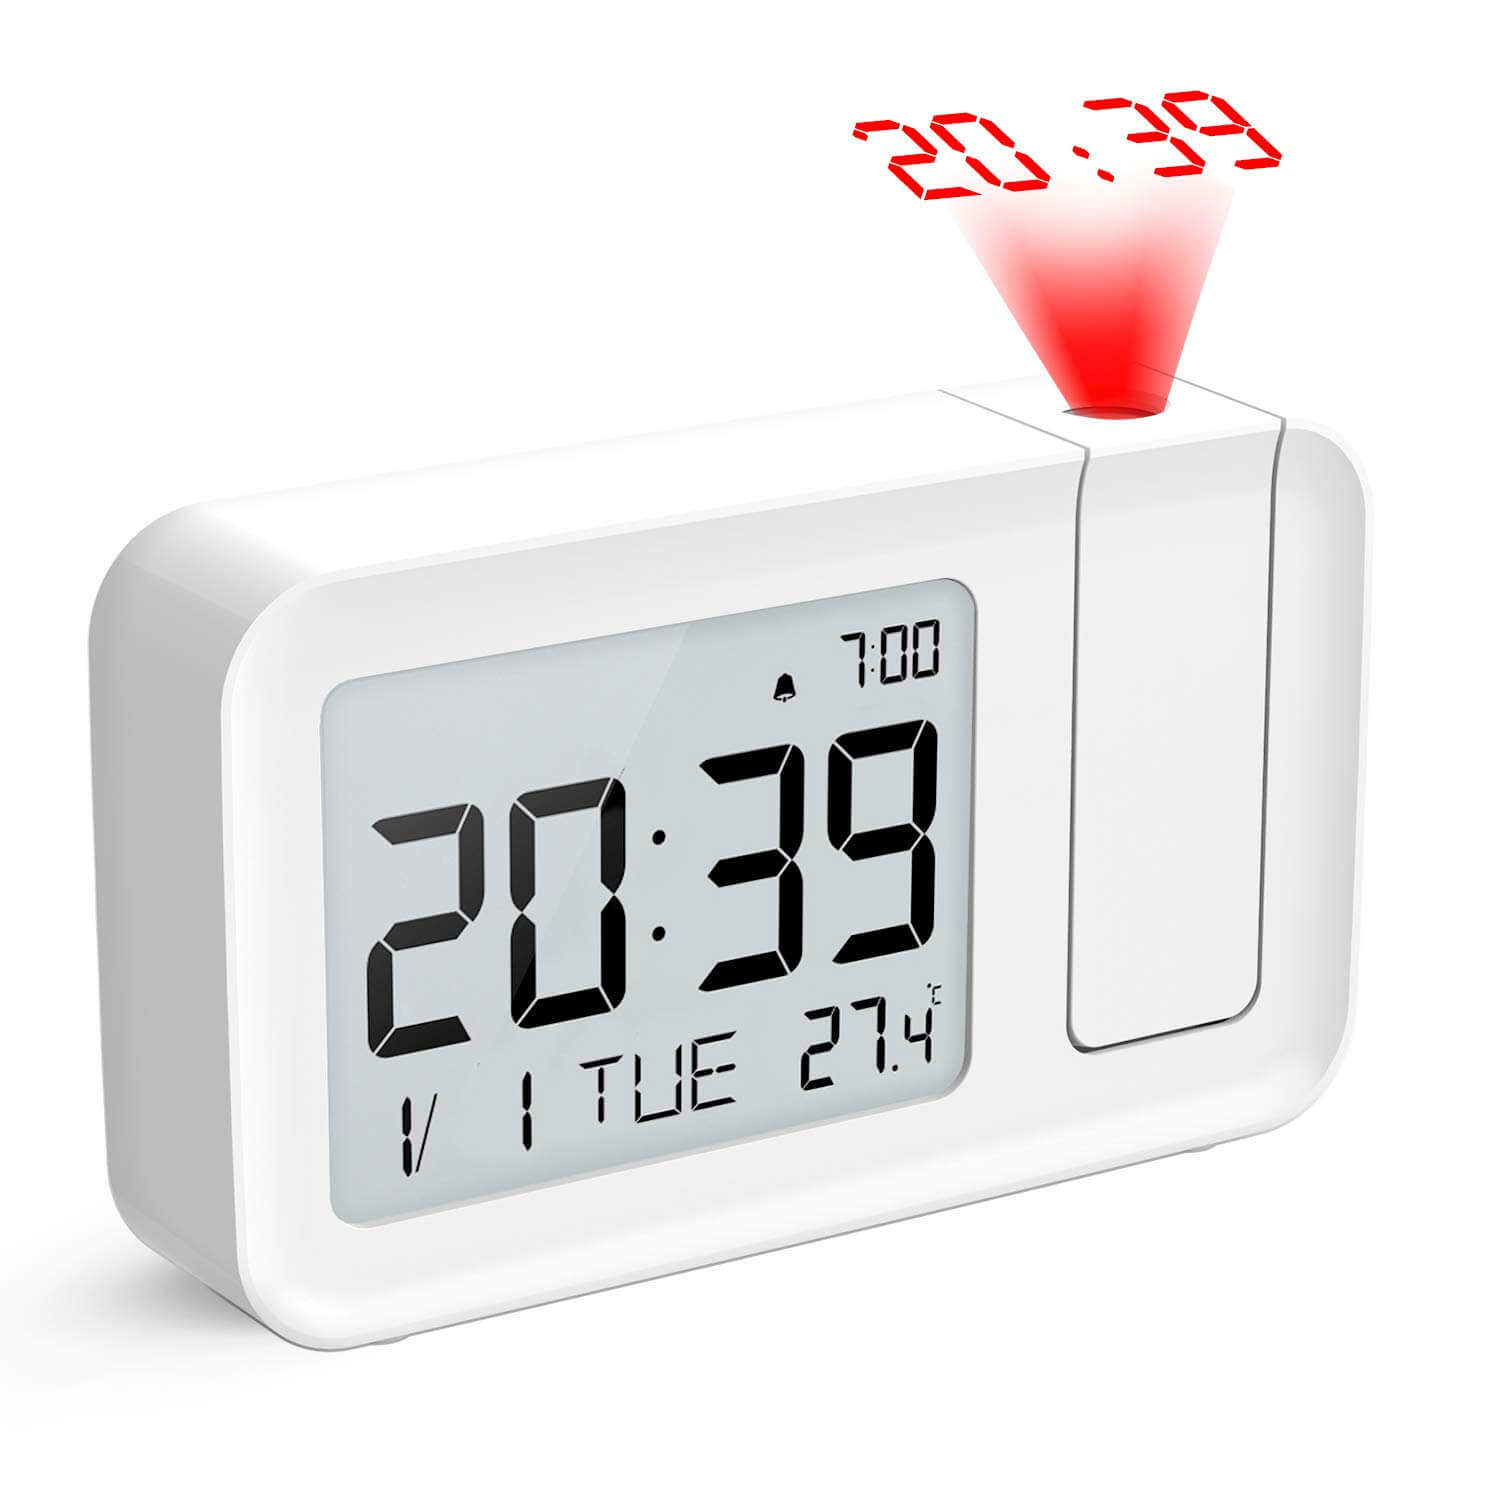 Projection Alarm Clock With Weather Station Forecast Weather Clock display Indoor temperature